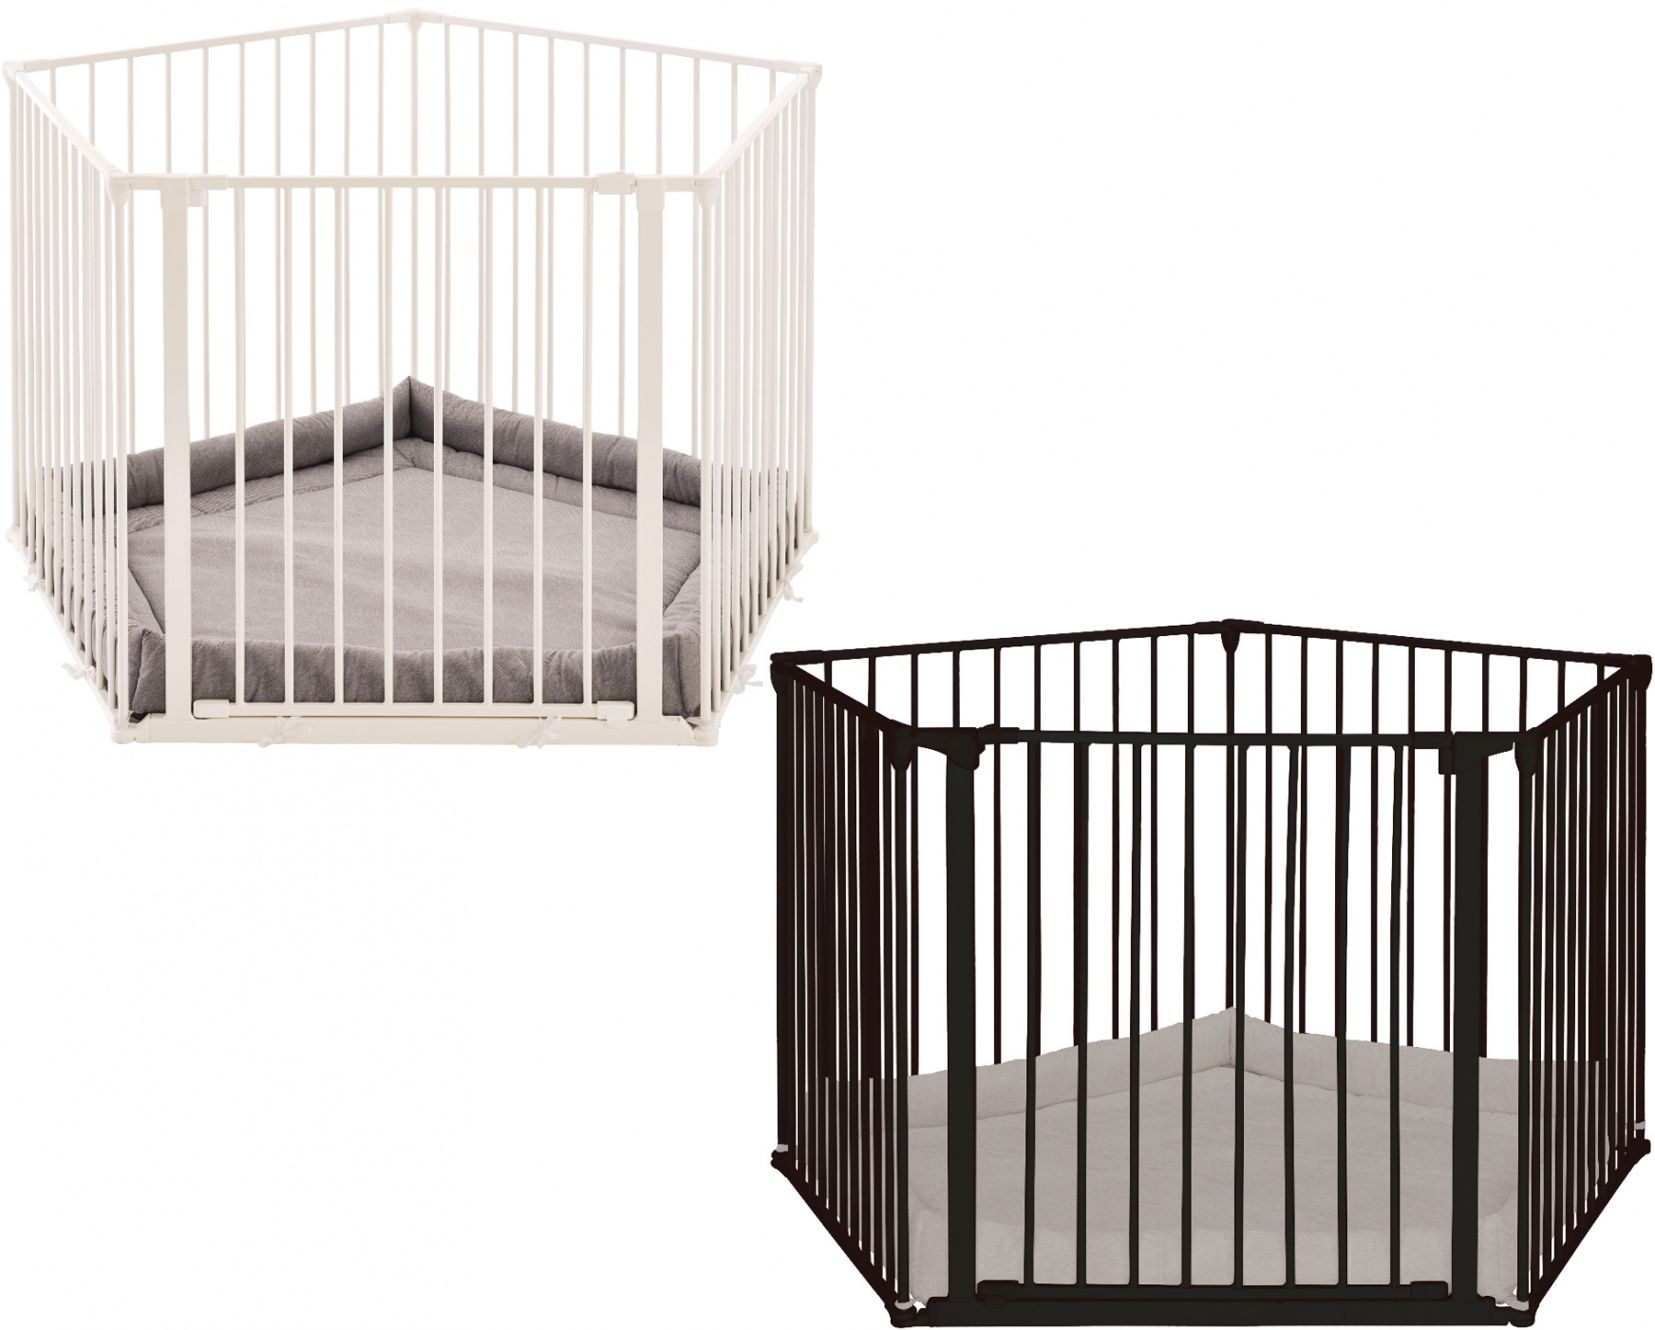 77 Baby Safety Room Divider Country Bedroom Decorating Ideas